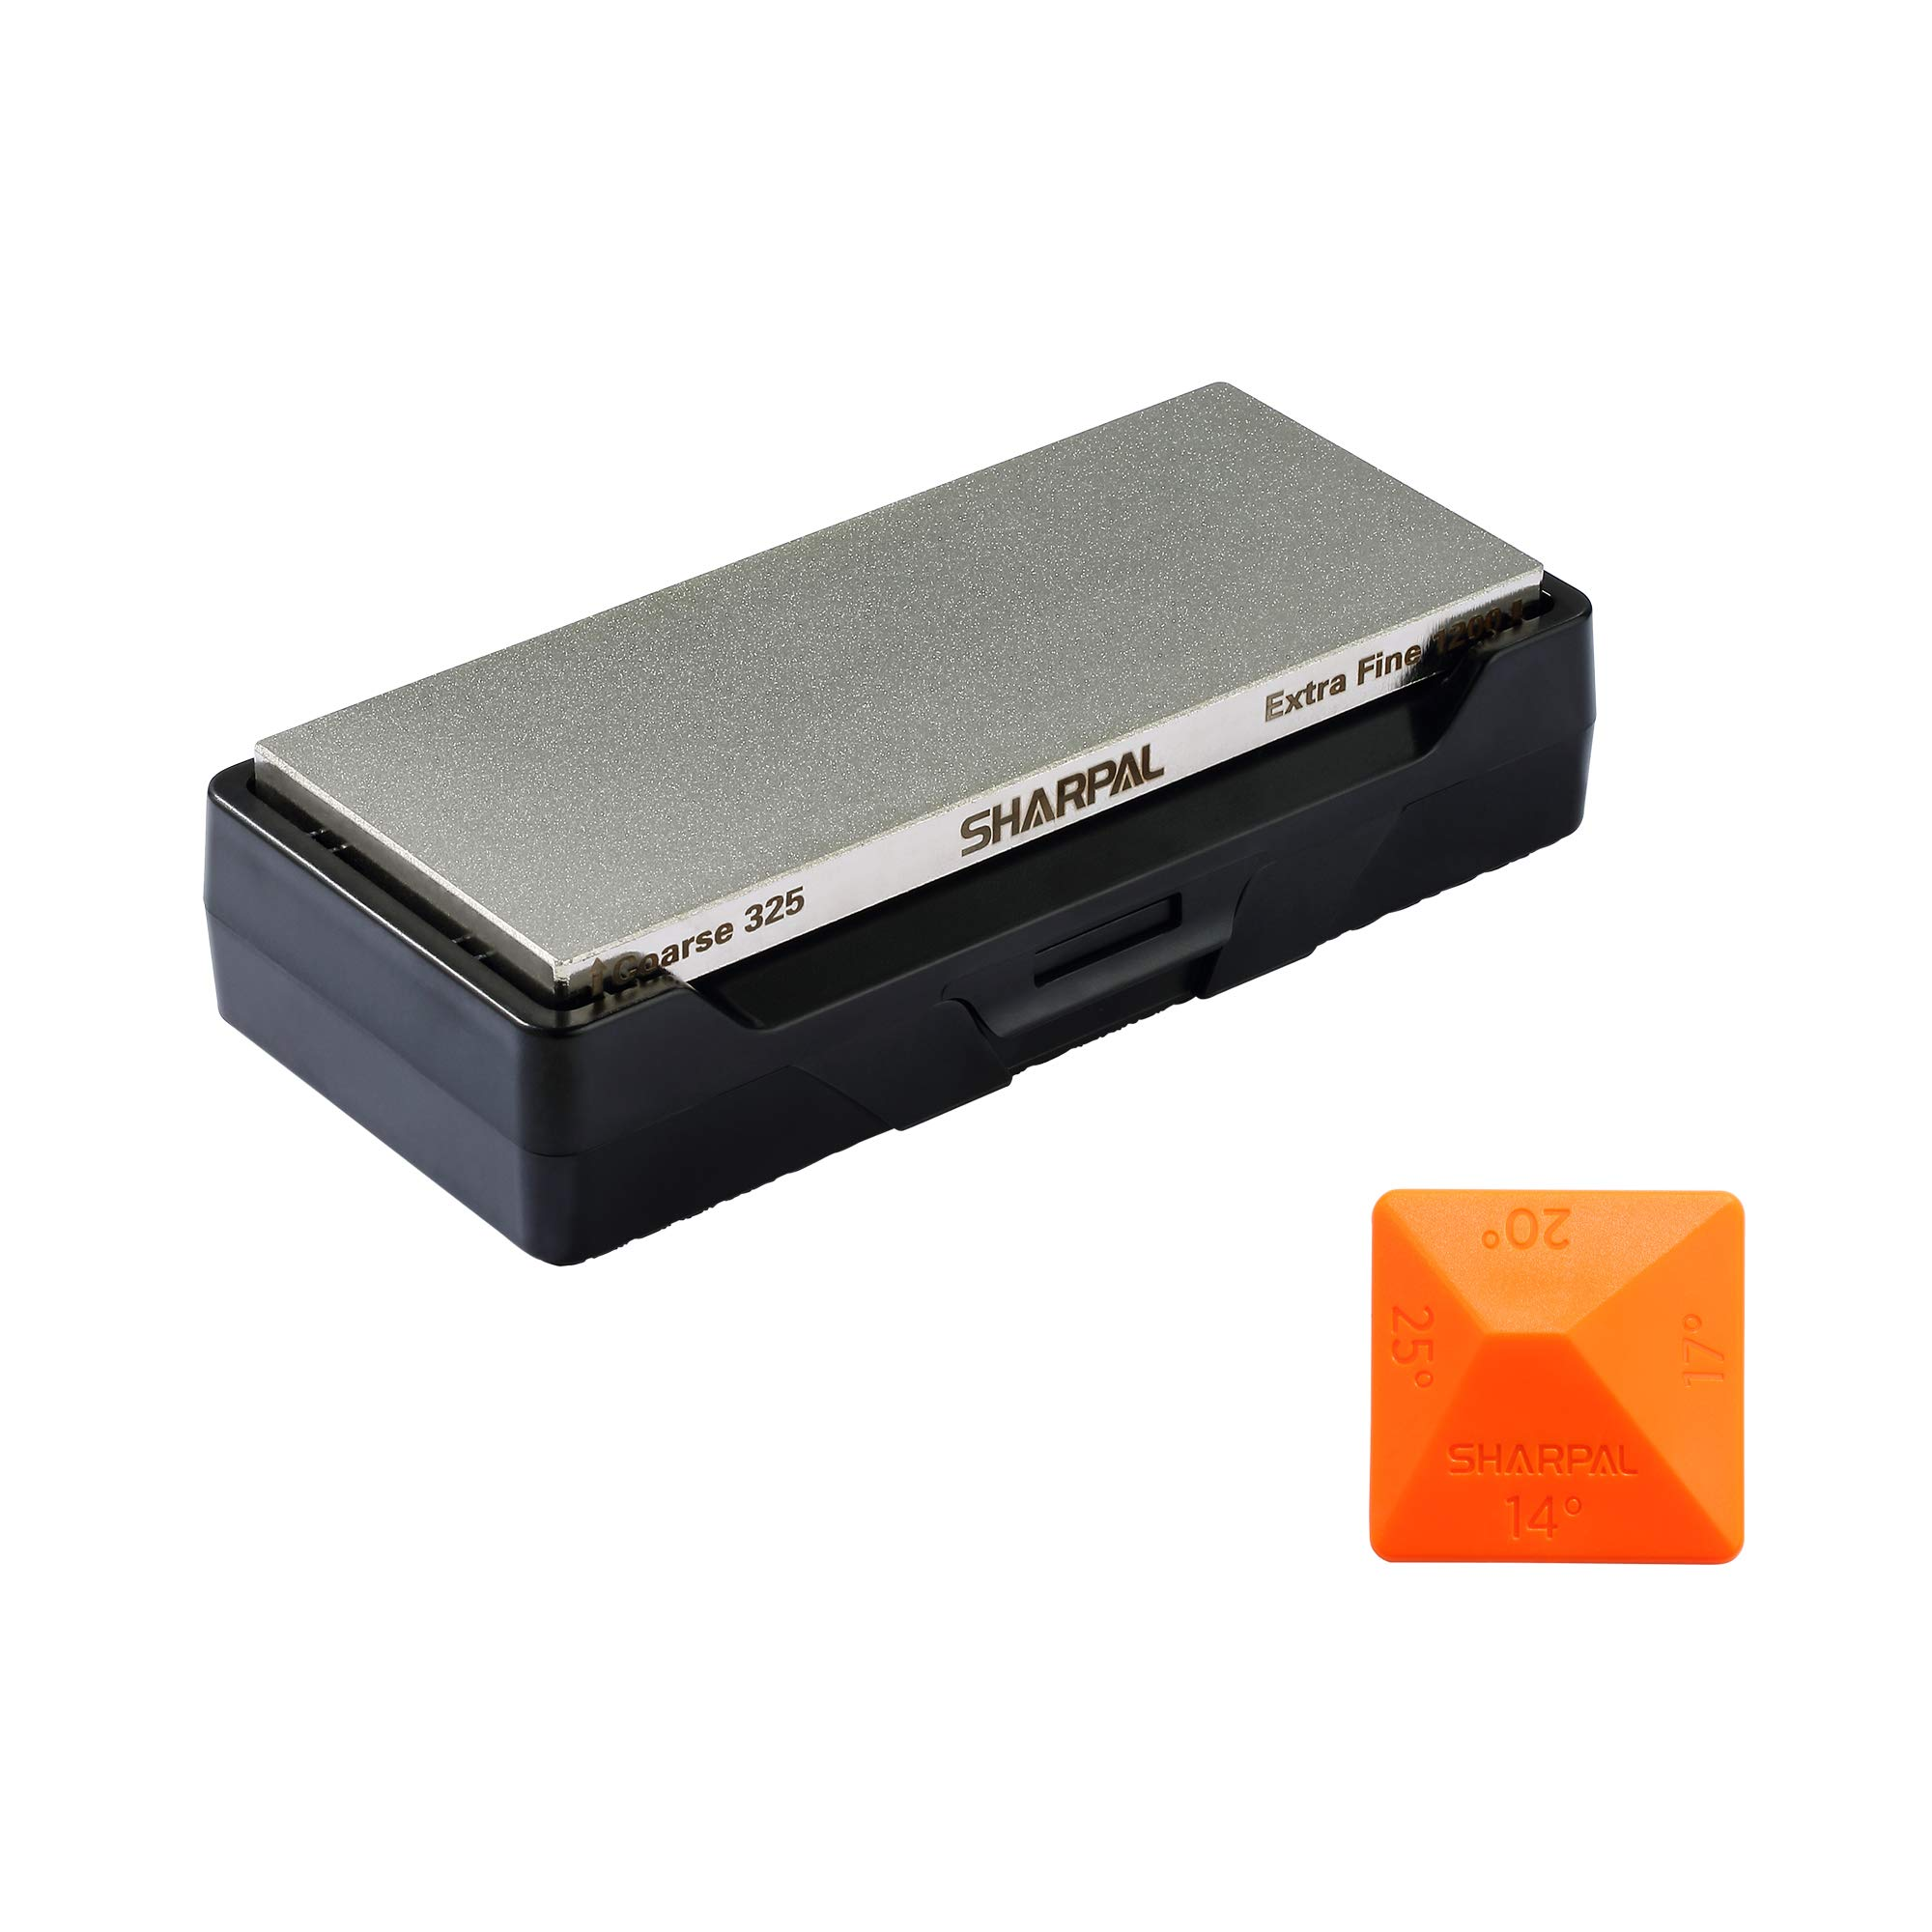 SHARPAL 156N Diamond Whetstone Knife Sharpener with Storage Base   2 Side Grit Coarse 325 / Extra Fine 1200   Diamond Sharpening Stone   NonSlip Base & Angle Guide (6 in. x 2.5 in.)